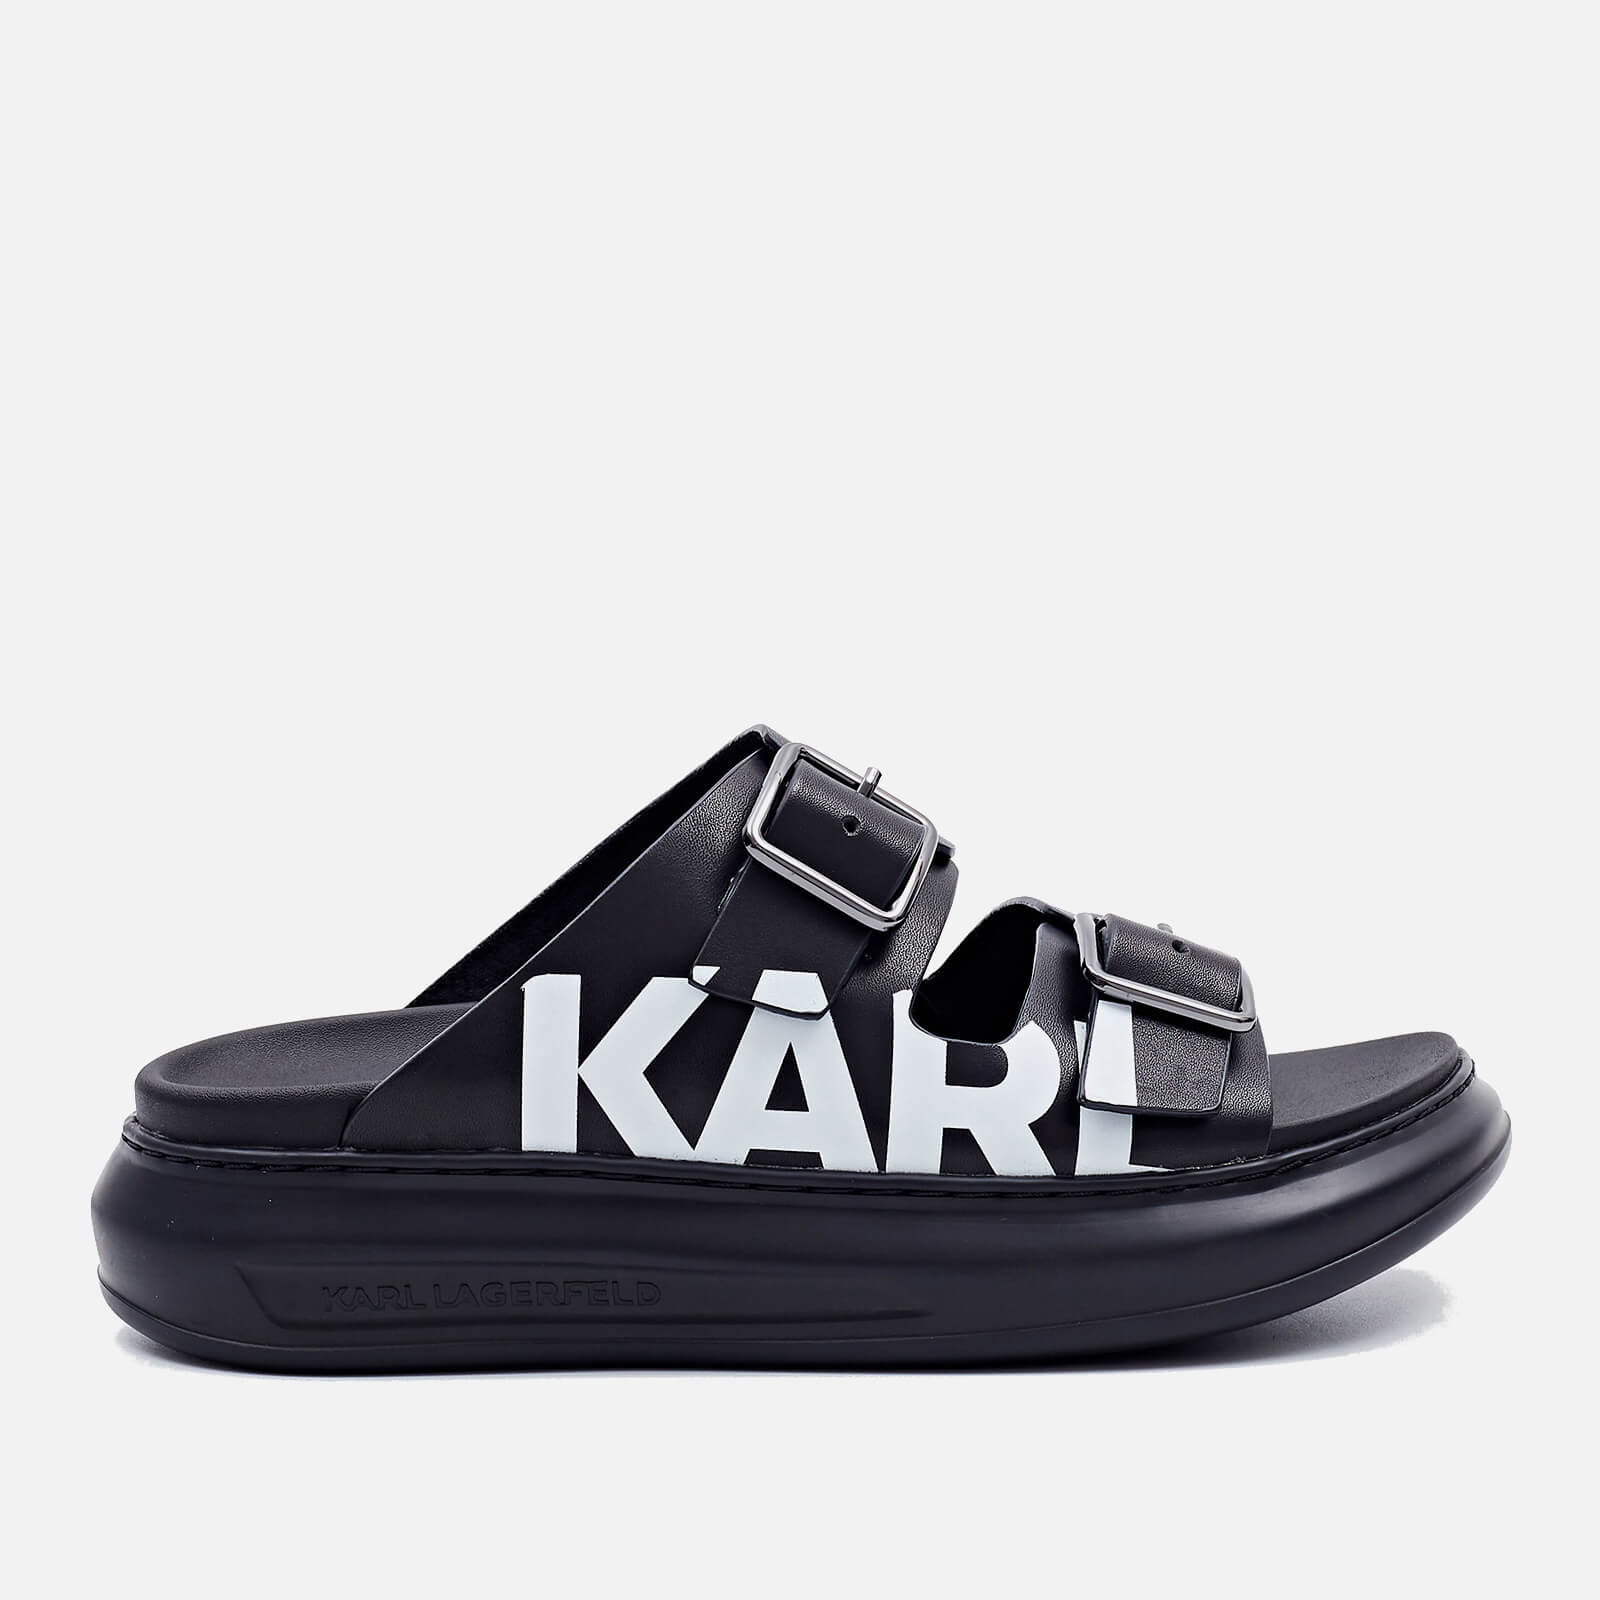 Click to view product details and reviews for Karl Lagerfeld Womens Kapri Leather Flatform Sandals Black Uk 3.